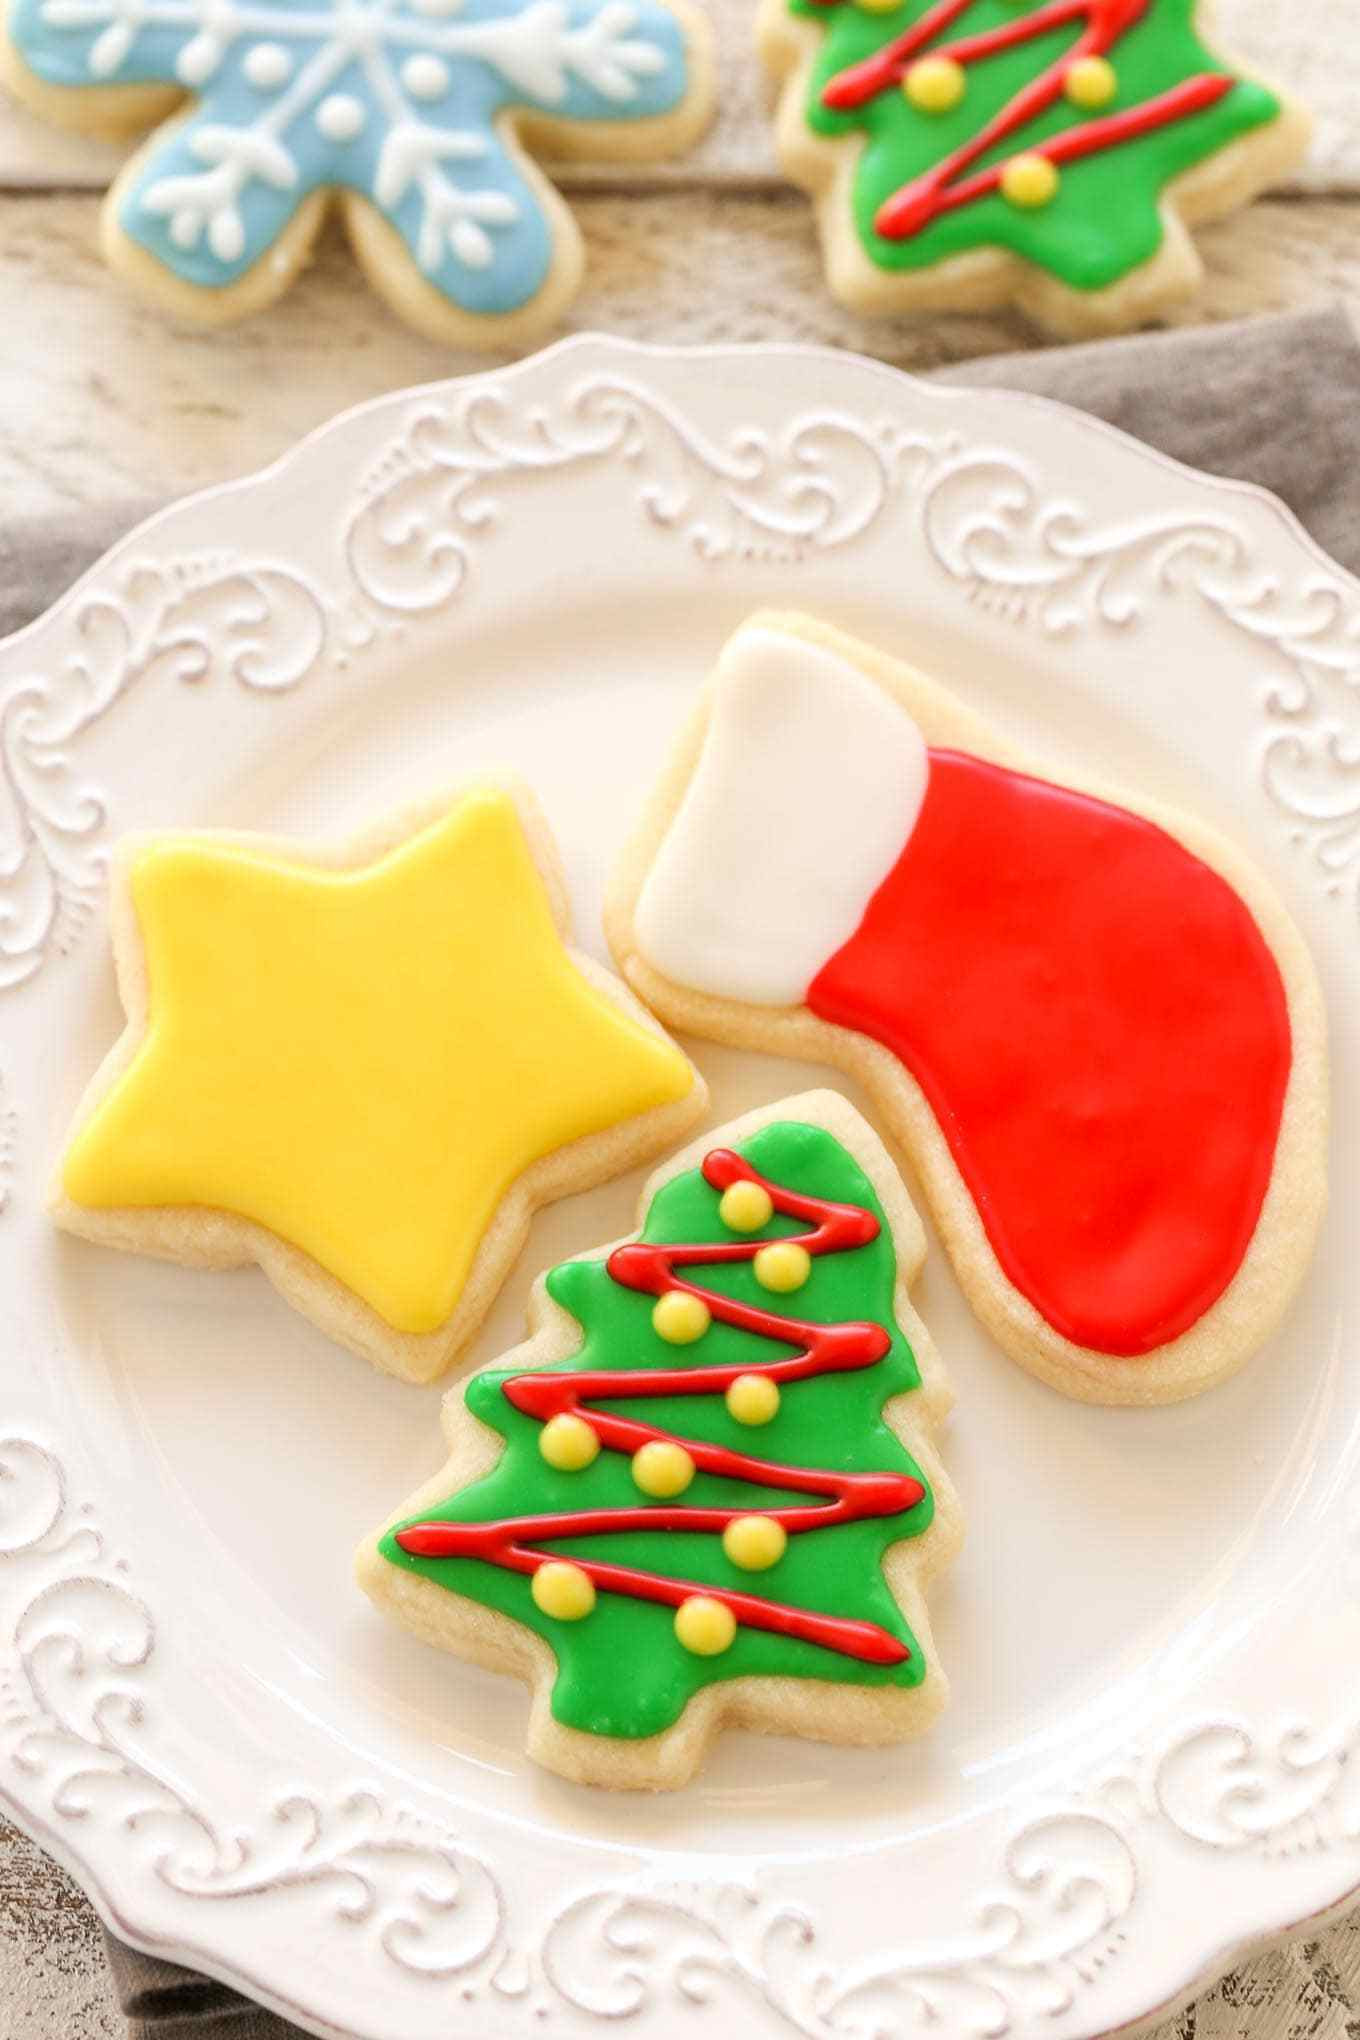 Cut Out Christmas Cookies  Soft Christmas Cut Out Sugar Cookies Live Well Bake ten